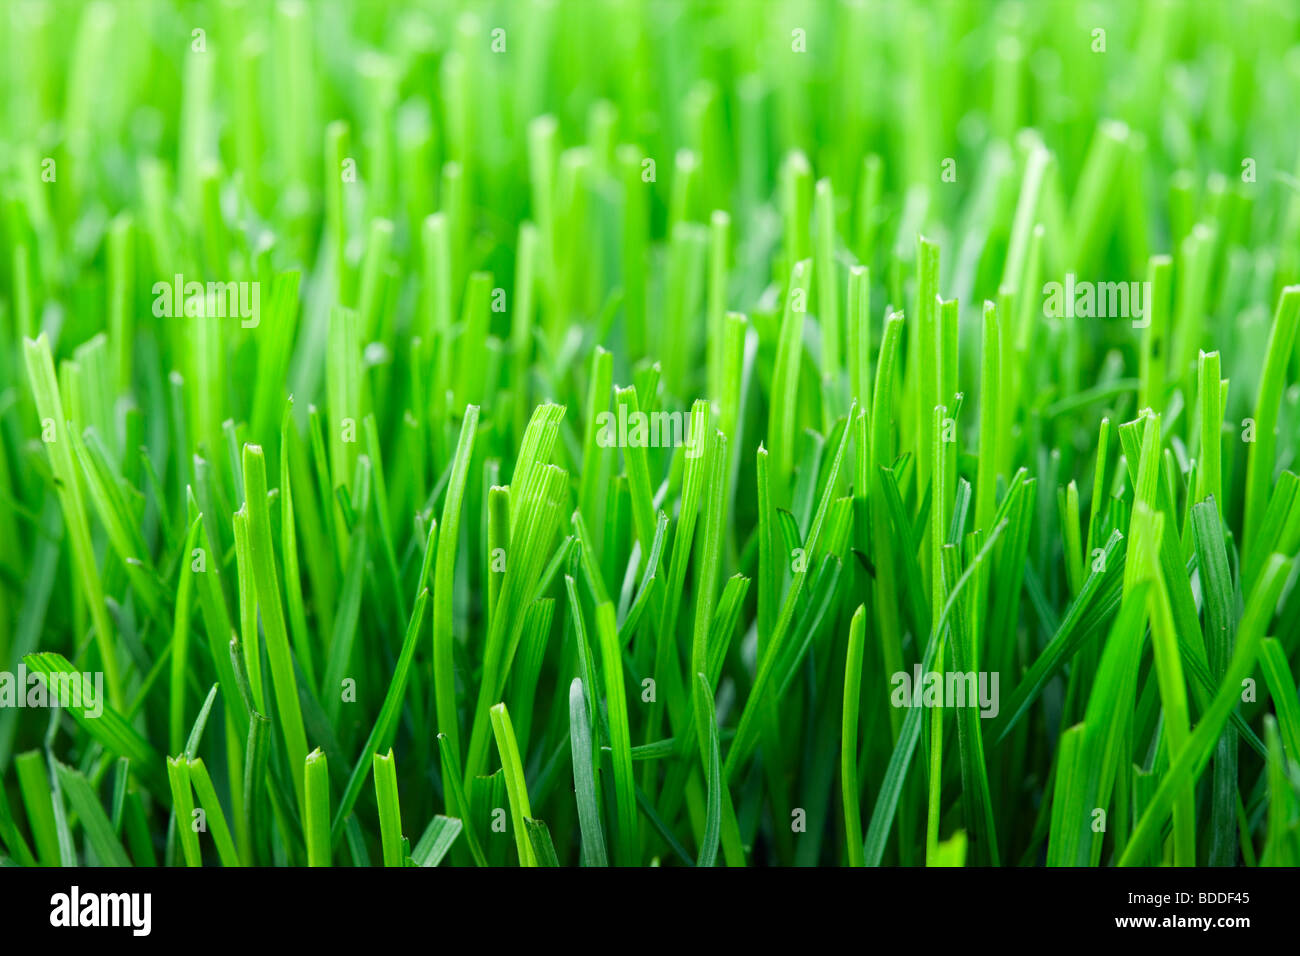 Lawn grass - Stock Image